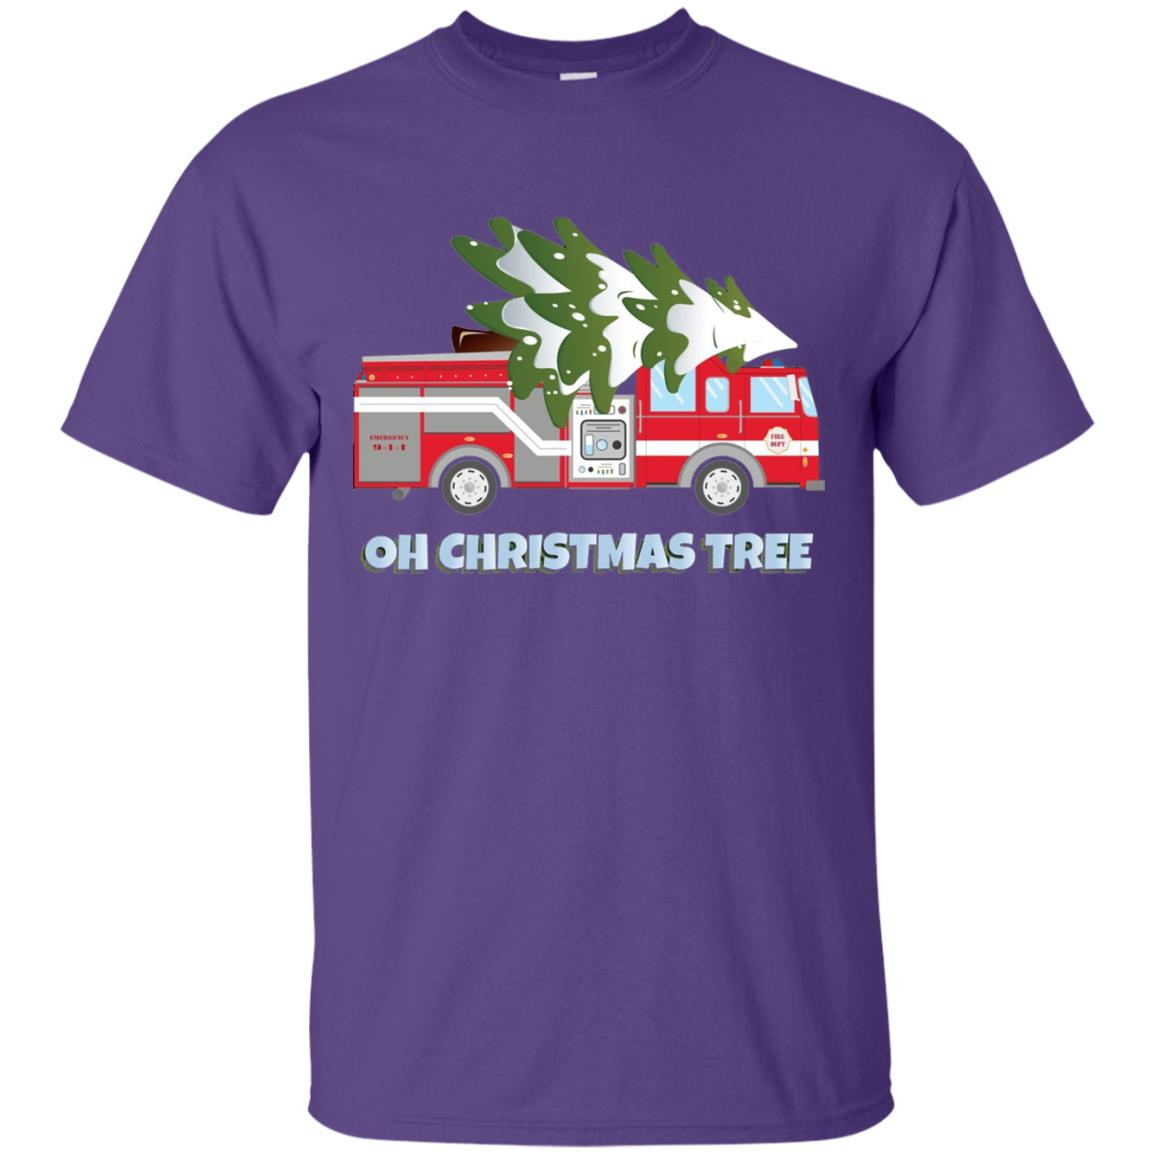 Funny Firefighter Christmas Gifts - Oh Christmas Tree Men\'s T-Shirt